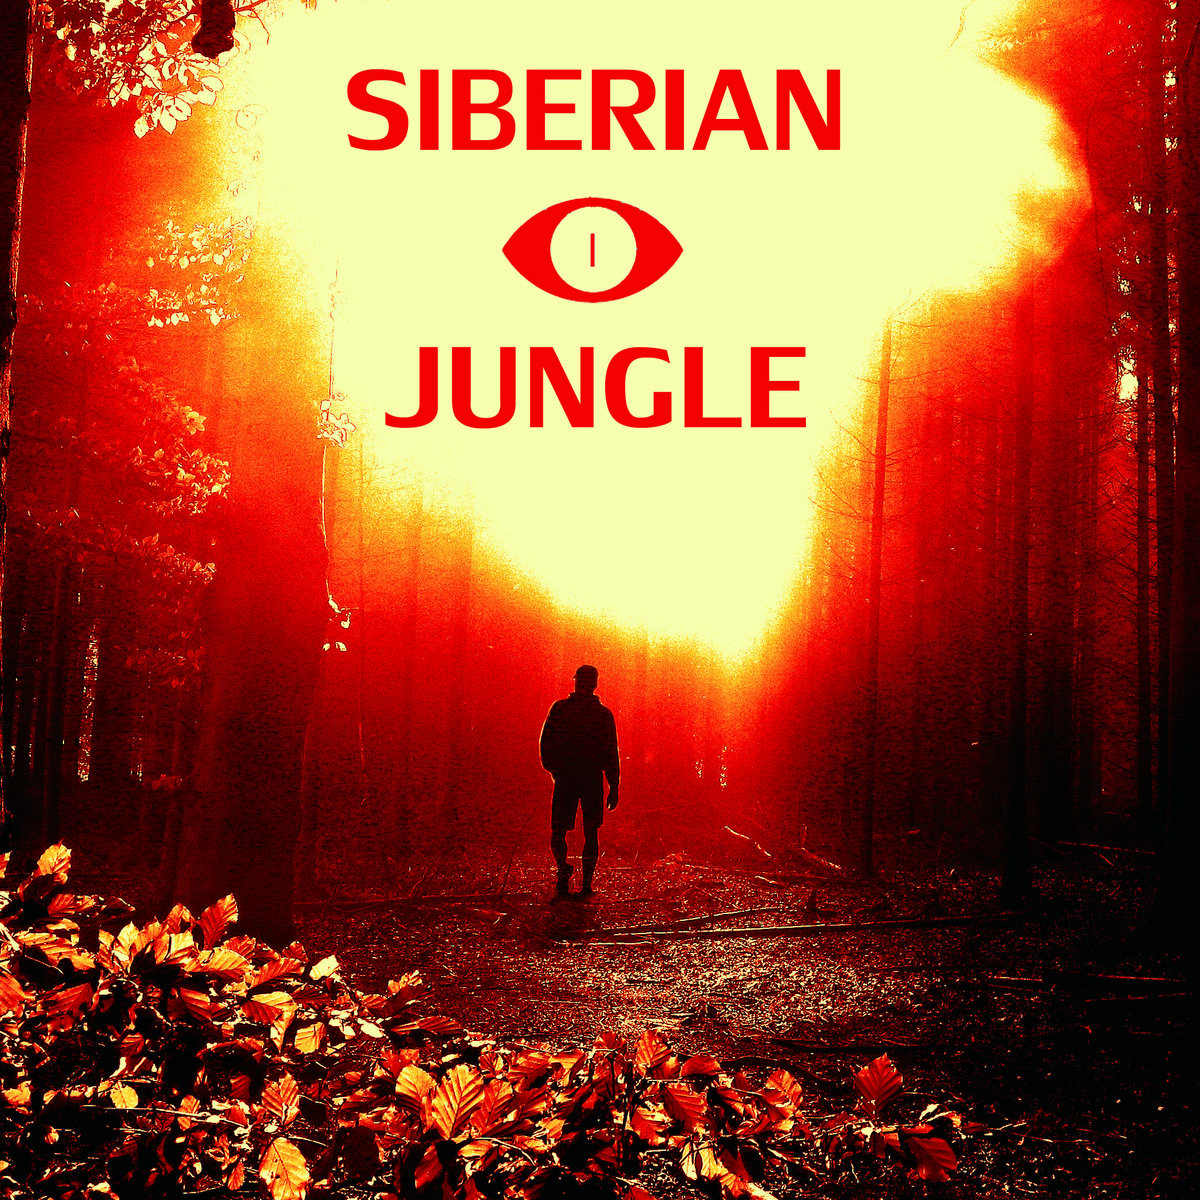 Nuclear Box - Think About You @ 'Siberian Jungle - Volume 1' album (atmospheric drum'n'bass, electronic)